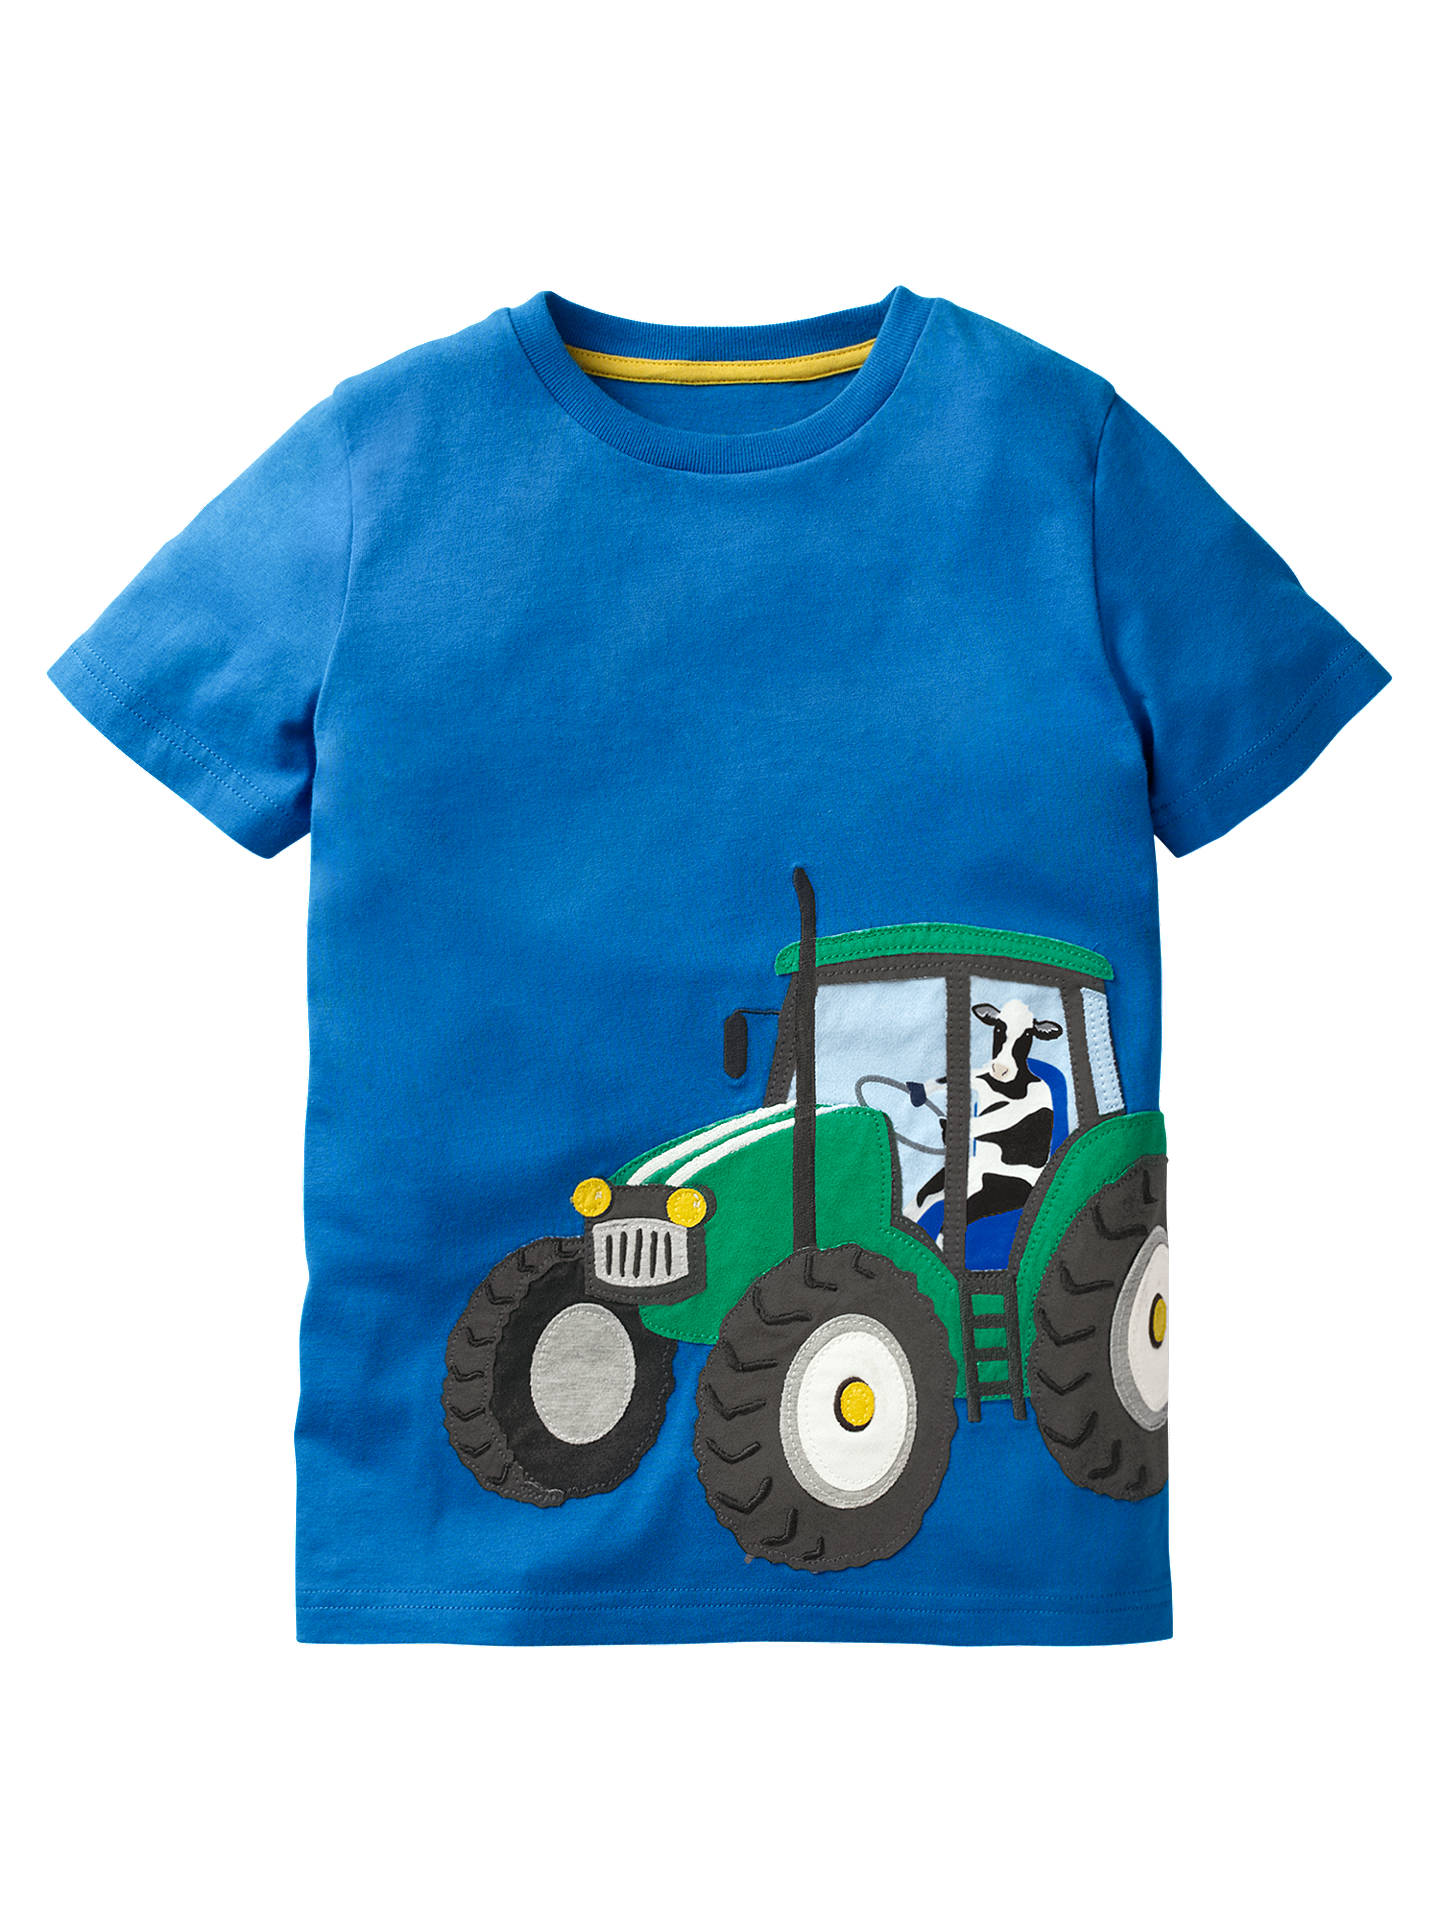 Mini Boden boy's baby cotton applique top t-shirt  new shirt tee applique logo T-Shirts, Tops & Shirts Baby